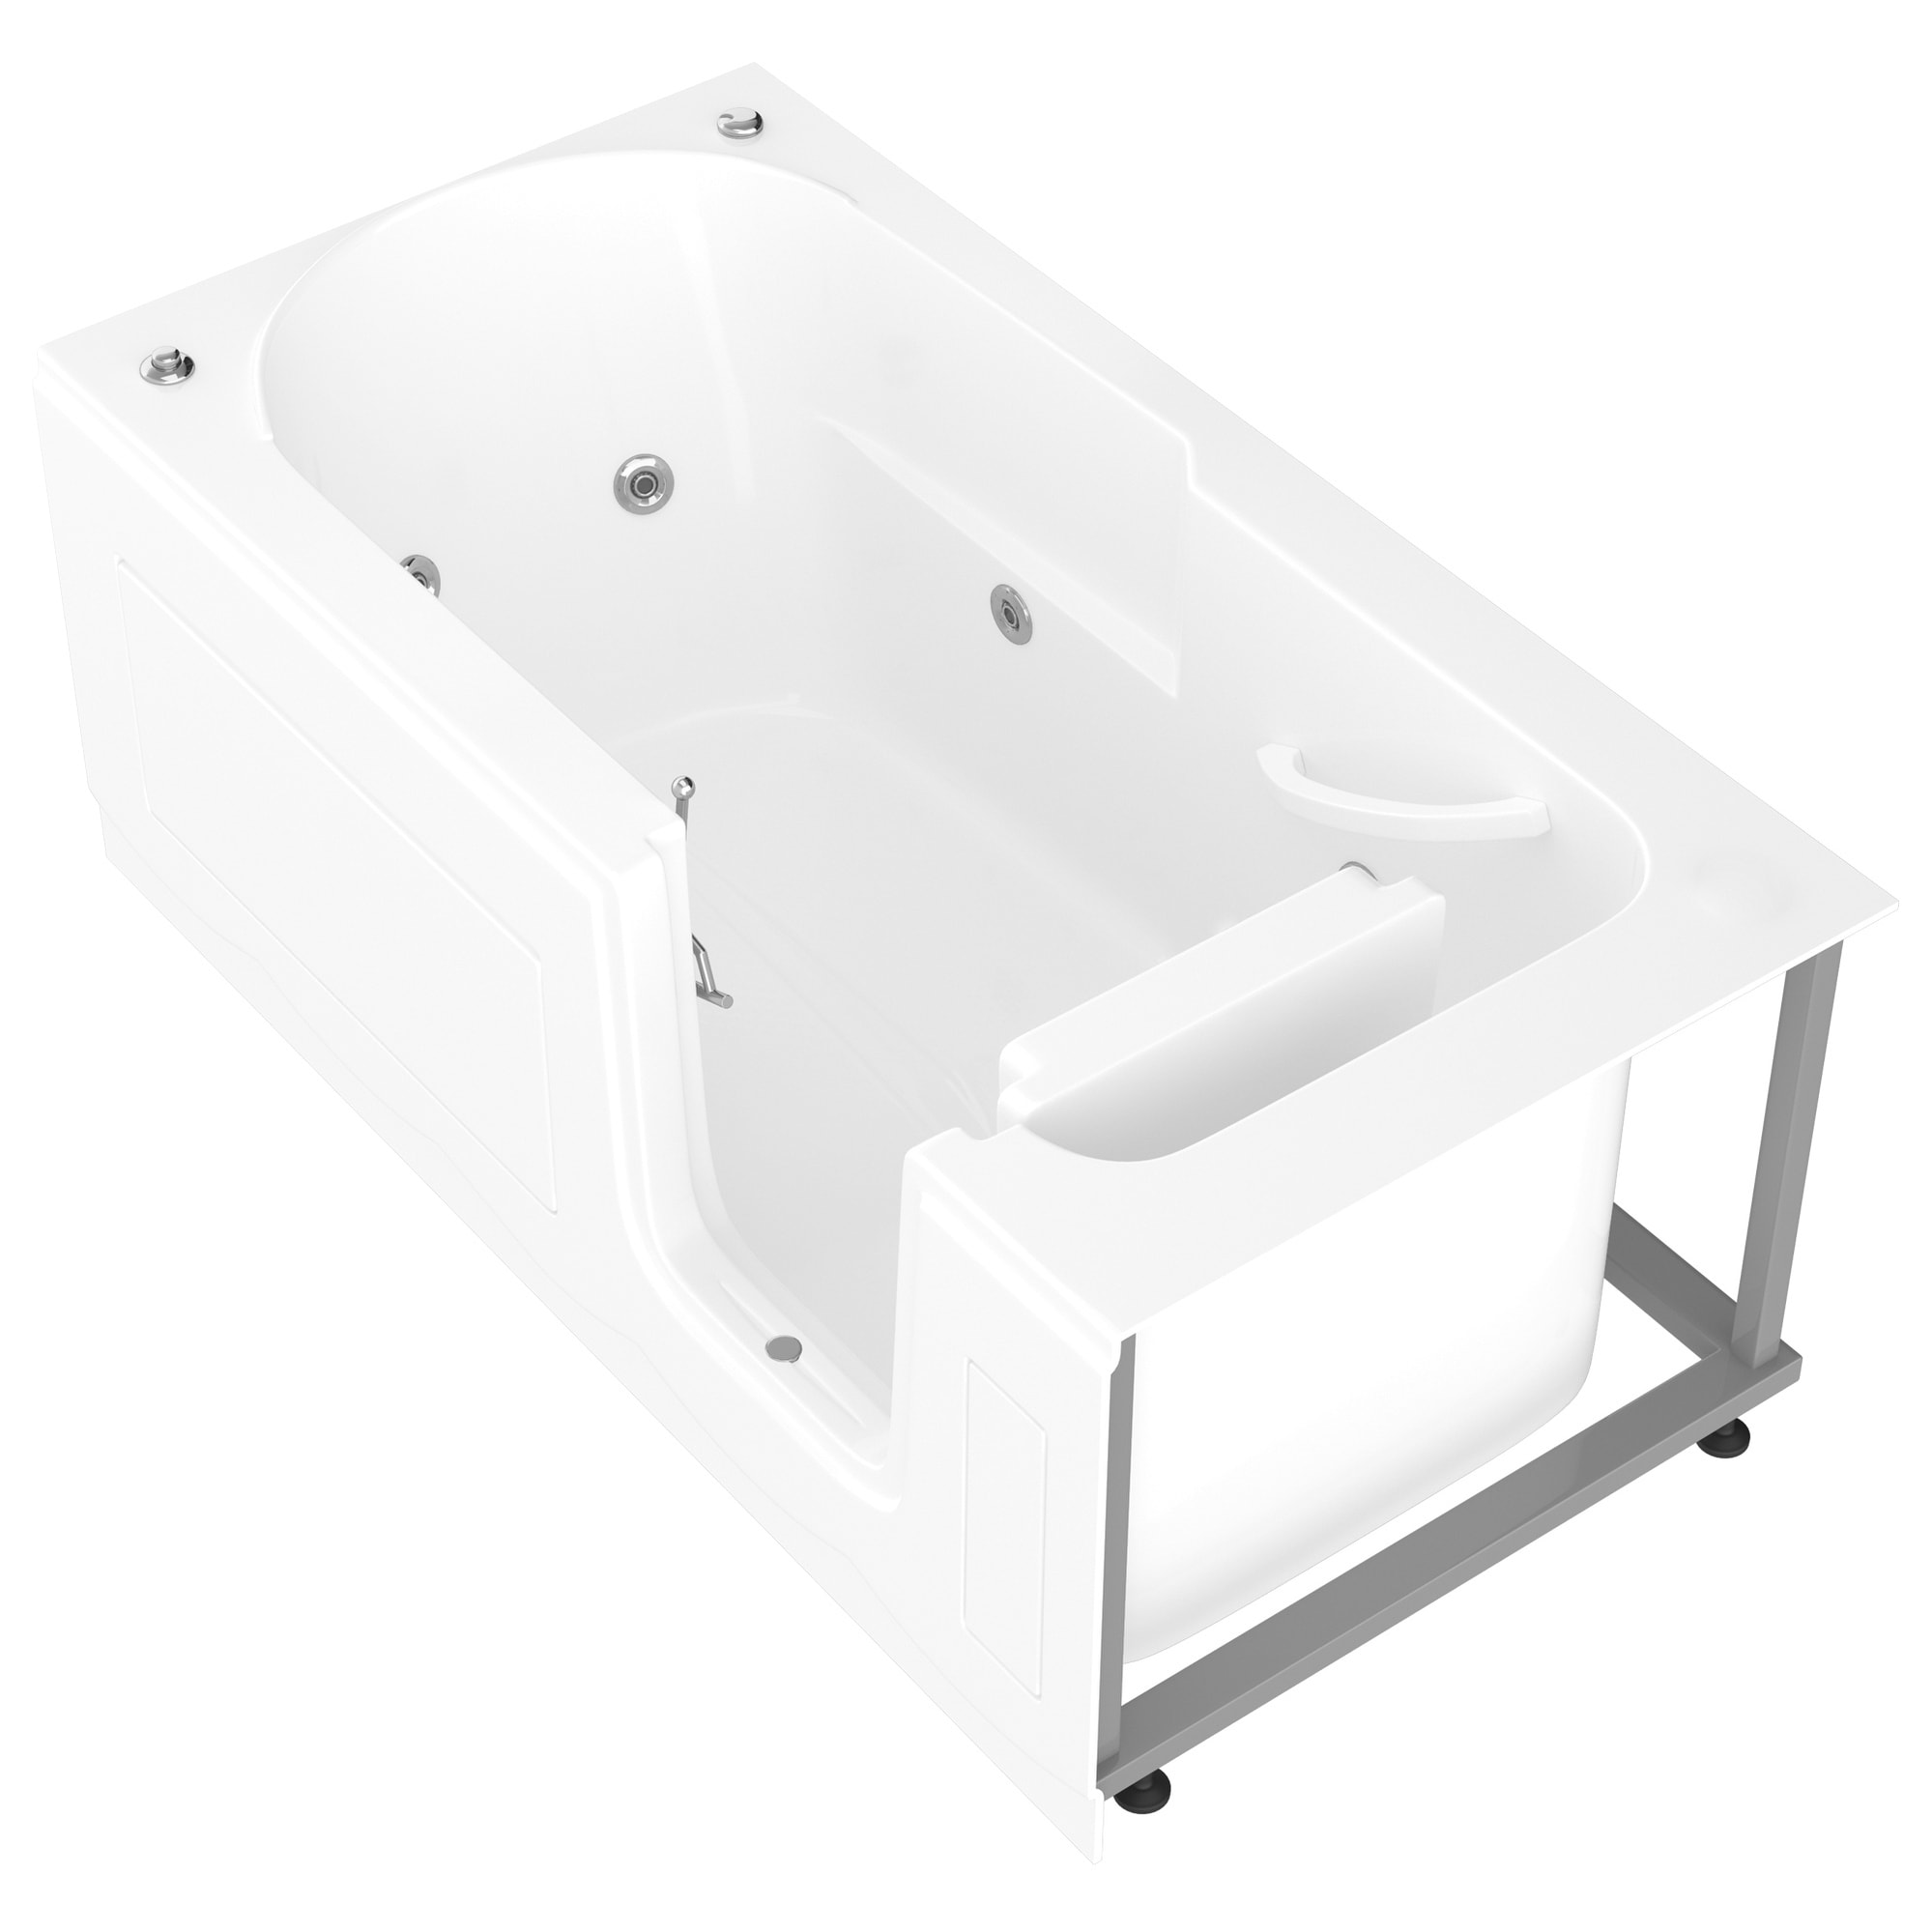 Meditub Step-In 30x60-inch Right Drain White Whirlpool Je...